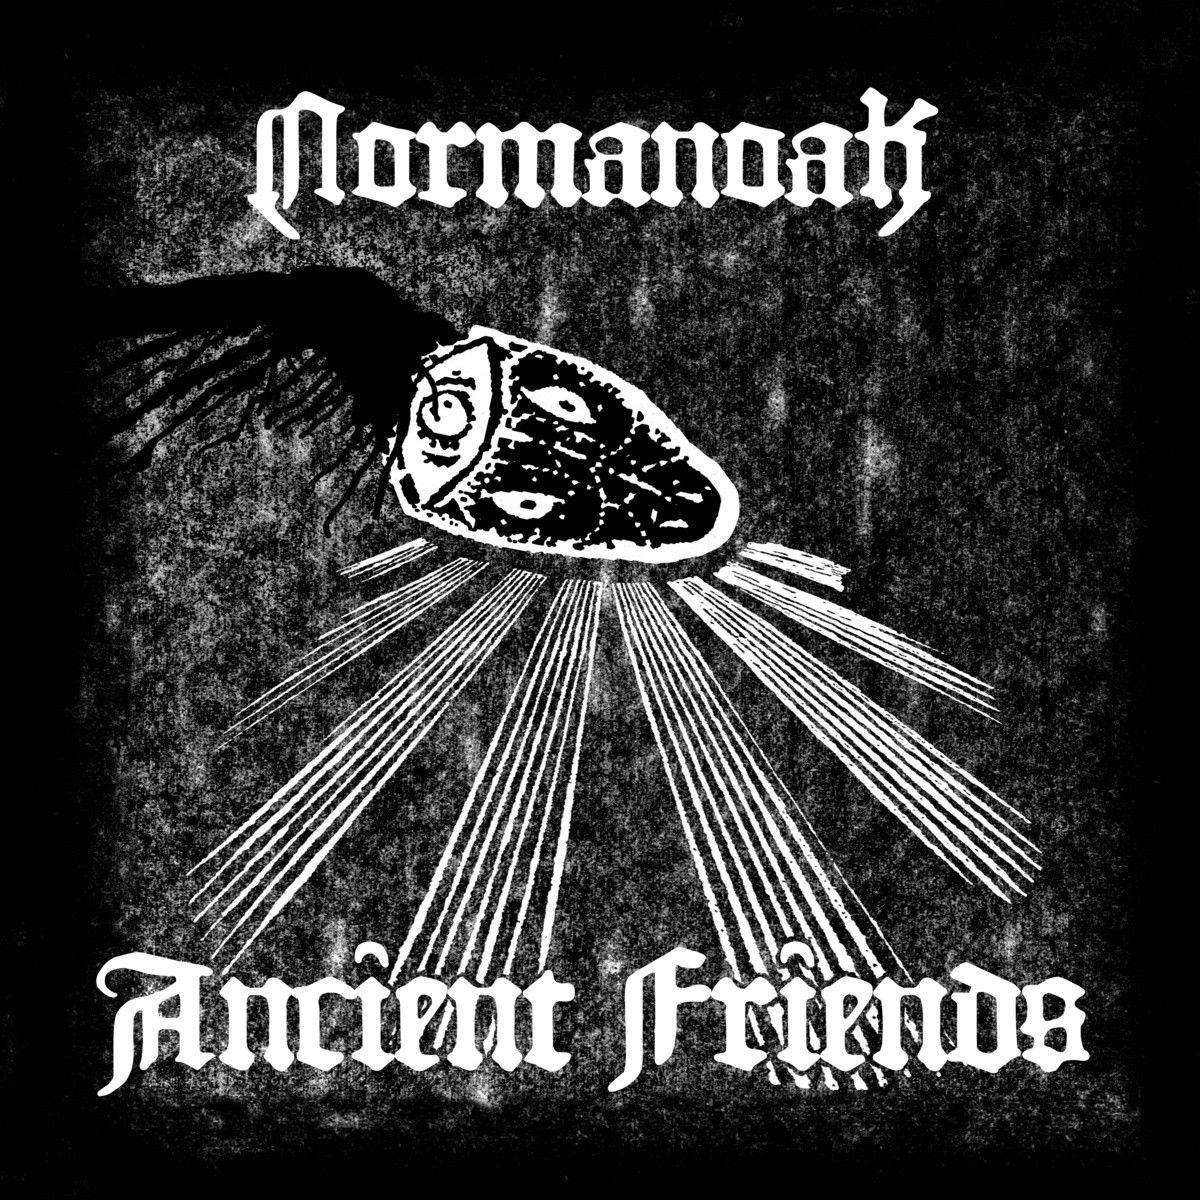 On NormanOak's new record 'Ancient Friends'